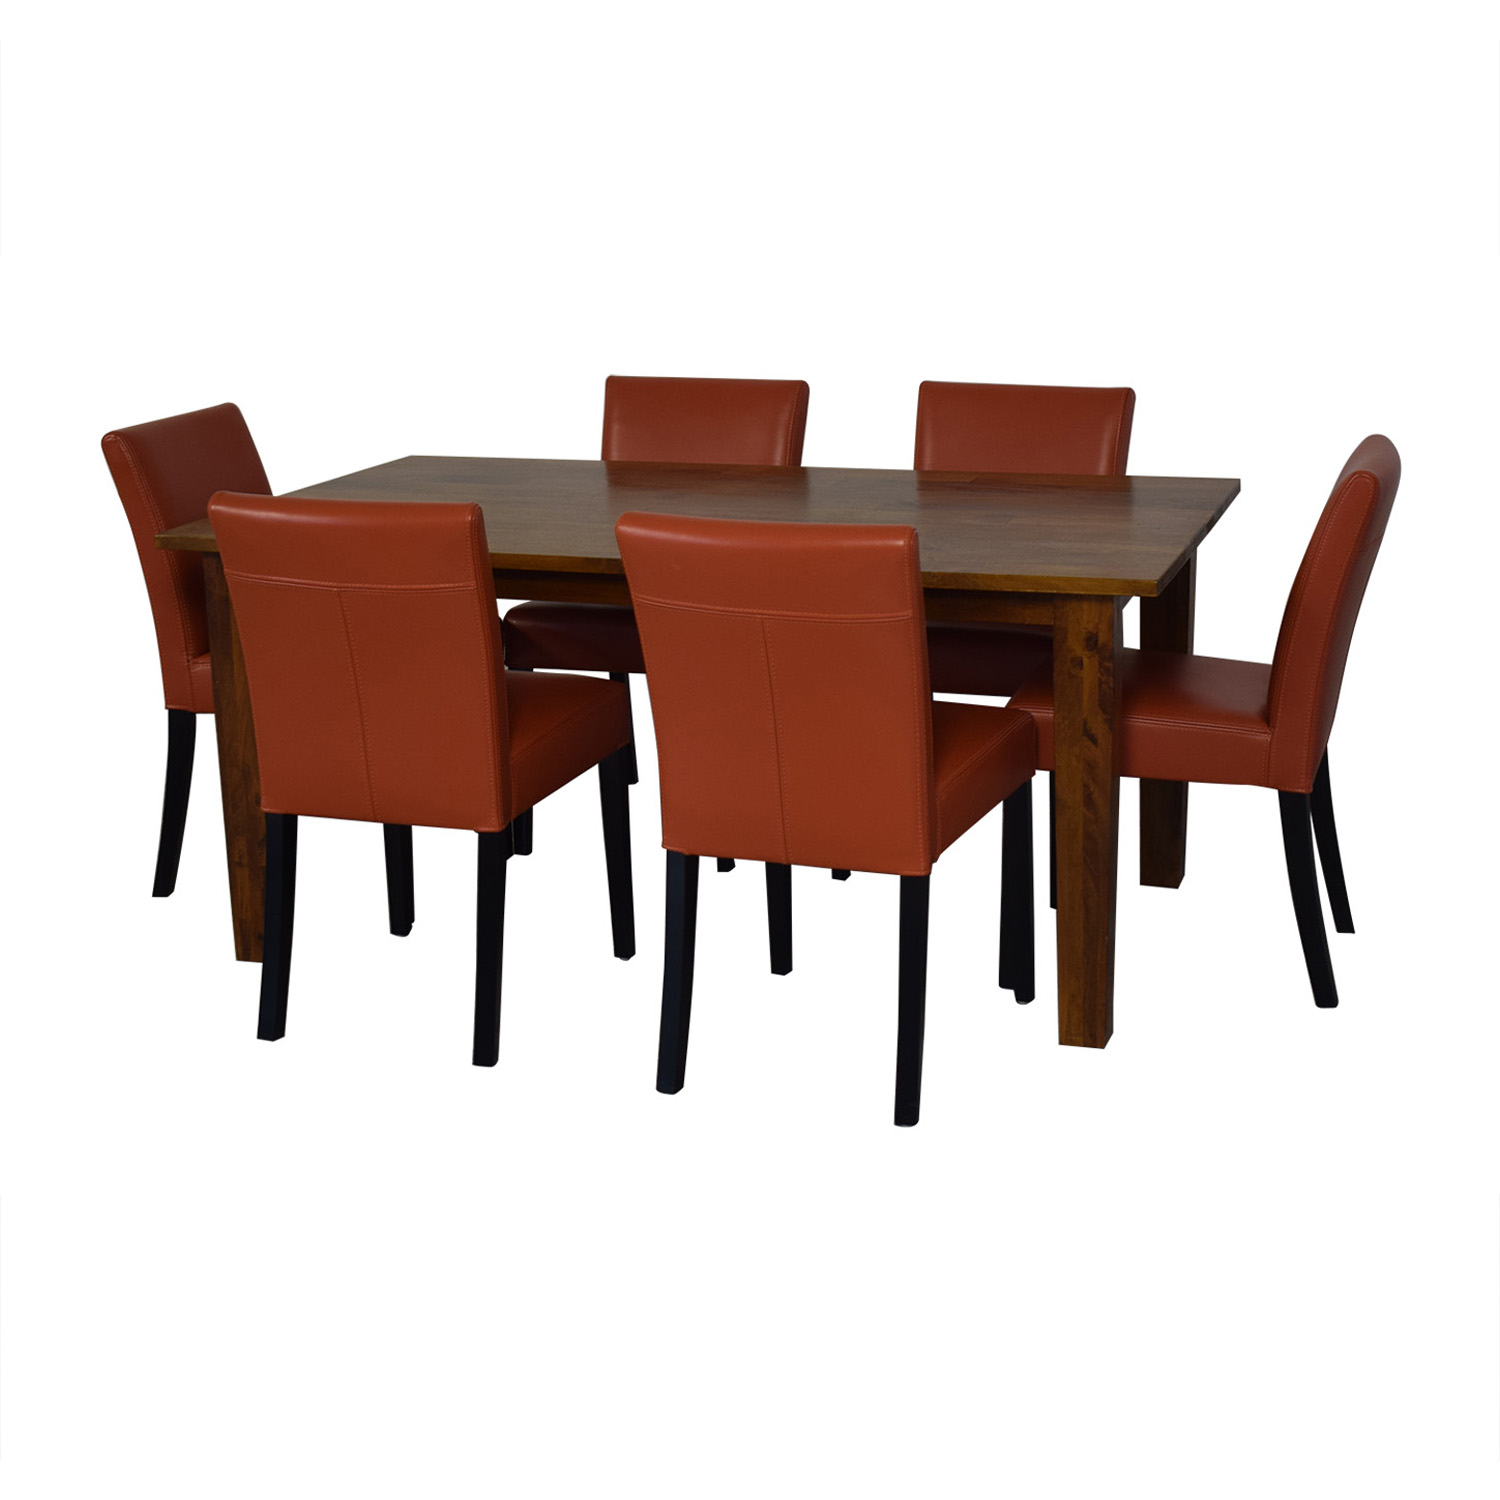 Crate & Barrel Crate & Barrel Basque Honey Dining Set and Lowe Persimmon Chairs used